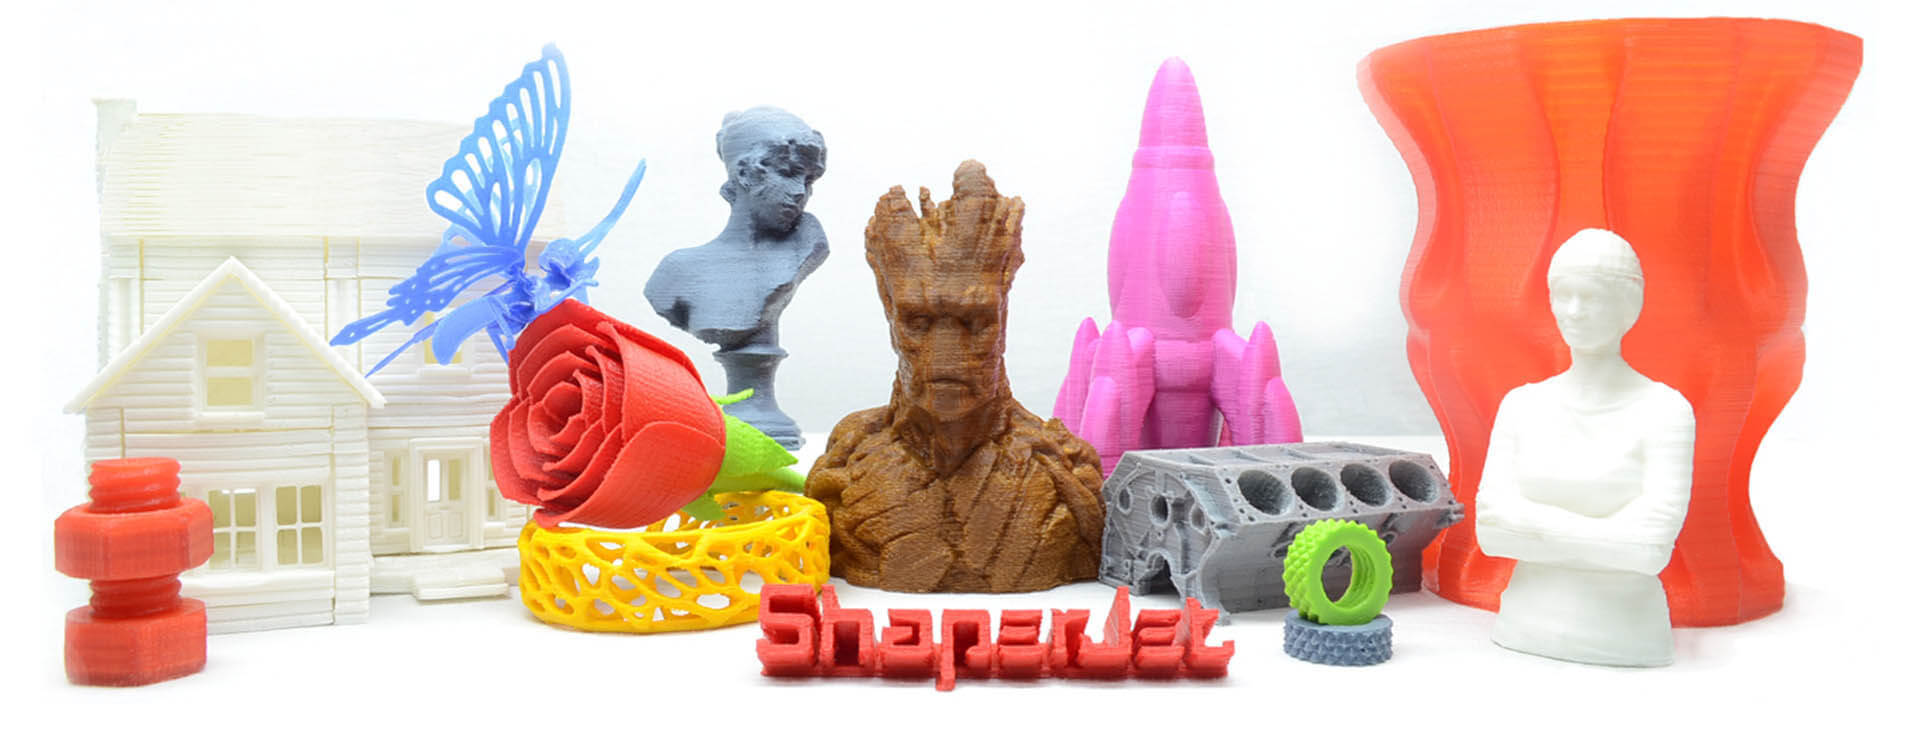 shaperjet-printed-objects